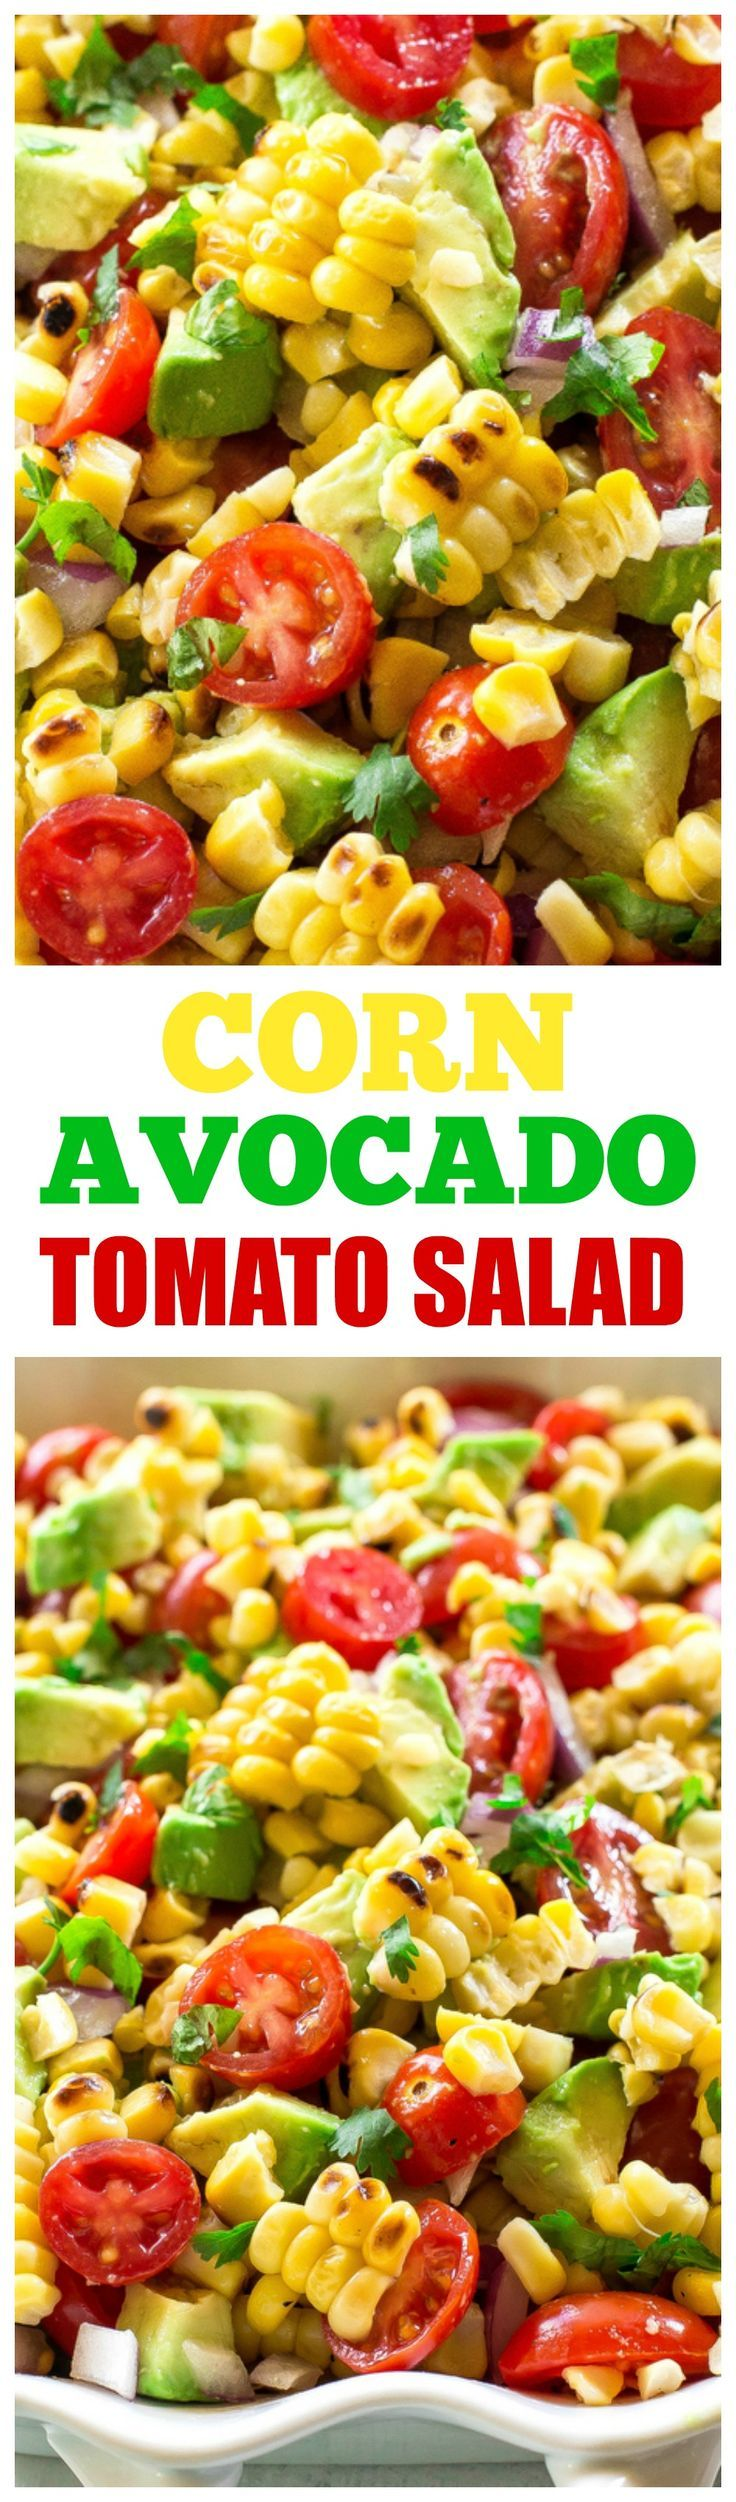 Corn, Avocado, and Tomato Salad - a healthy and light salad perfect for BBQs and get togethers. http://the-girl-who-ate-everything.com